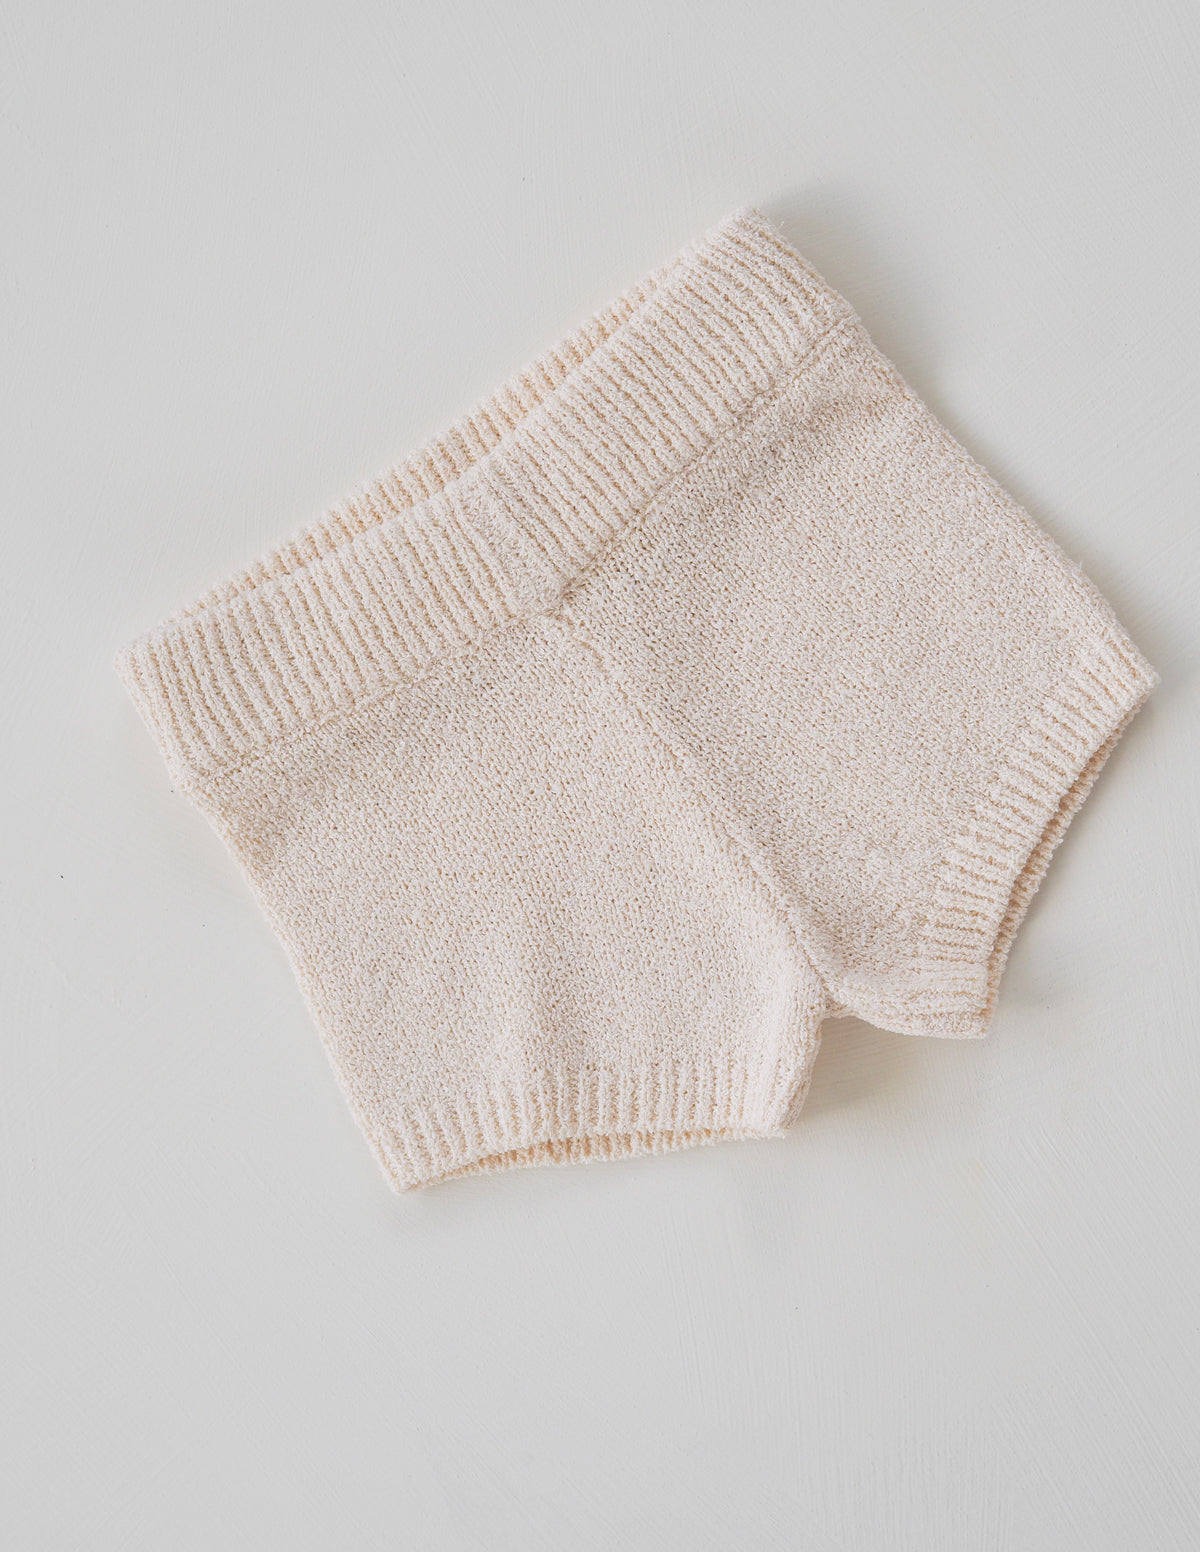 The Golden Knit Shortie - Cream